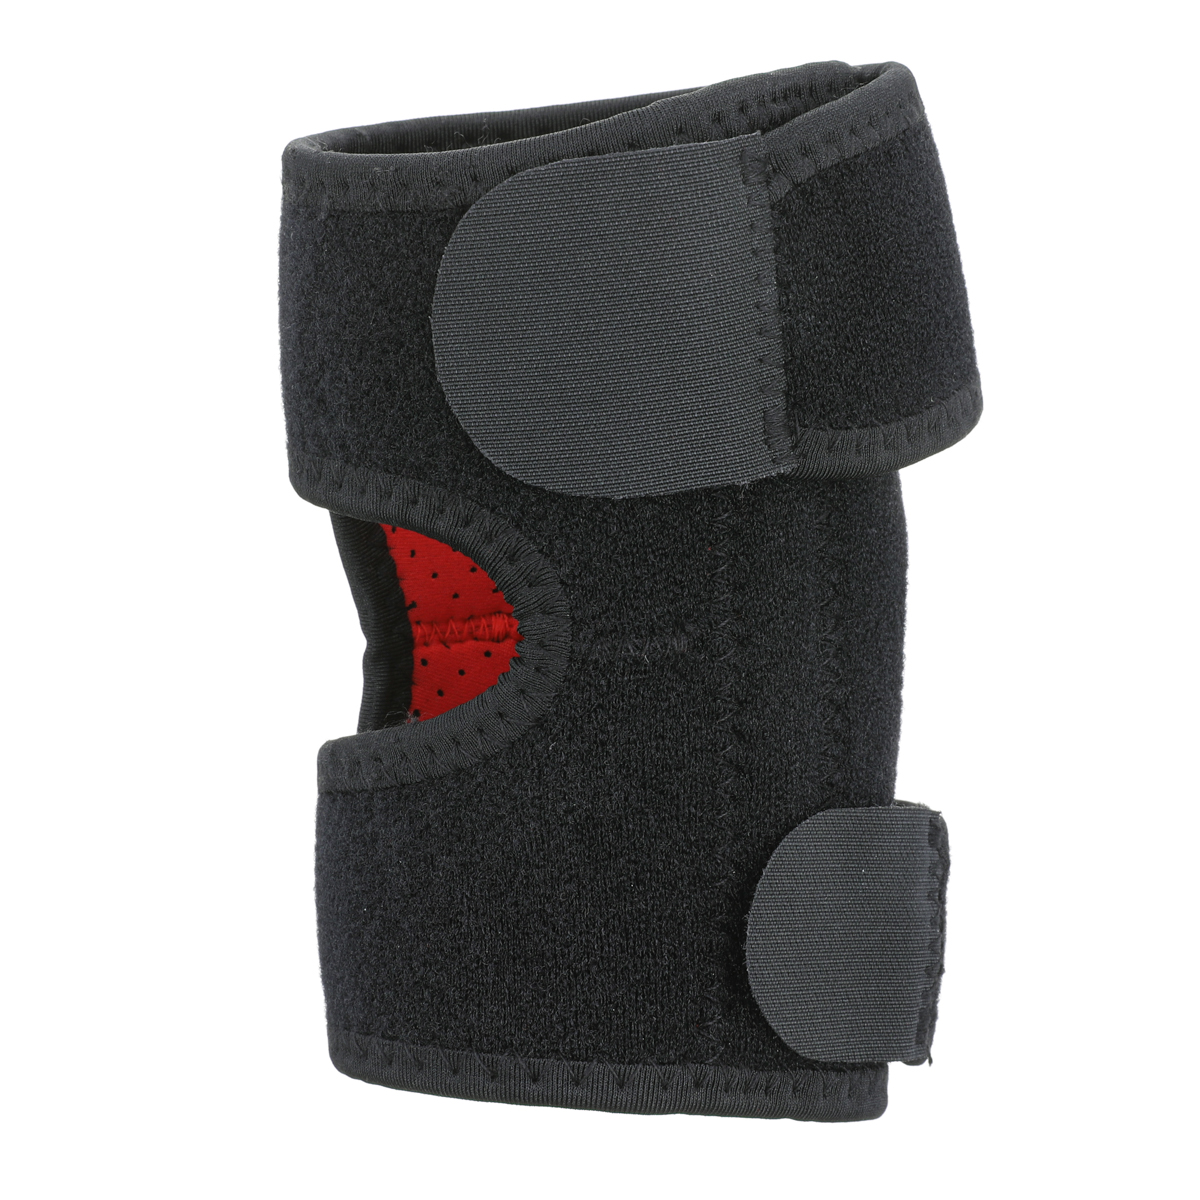 Adjustable Elbow Brace Breathable Neoprene Support with Dual-Spring Stabilisers, Arm Wrap Elbow Strap for Tennis Elbow